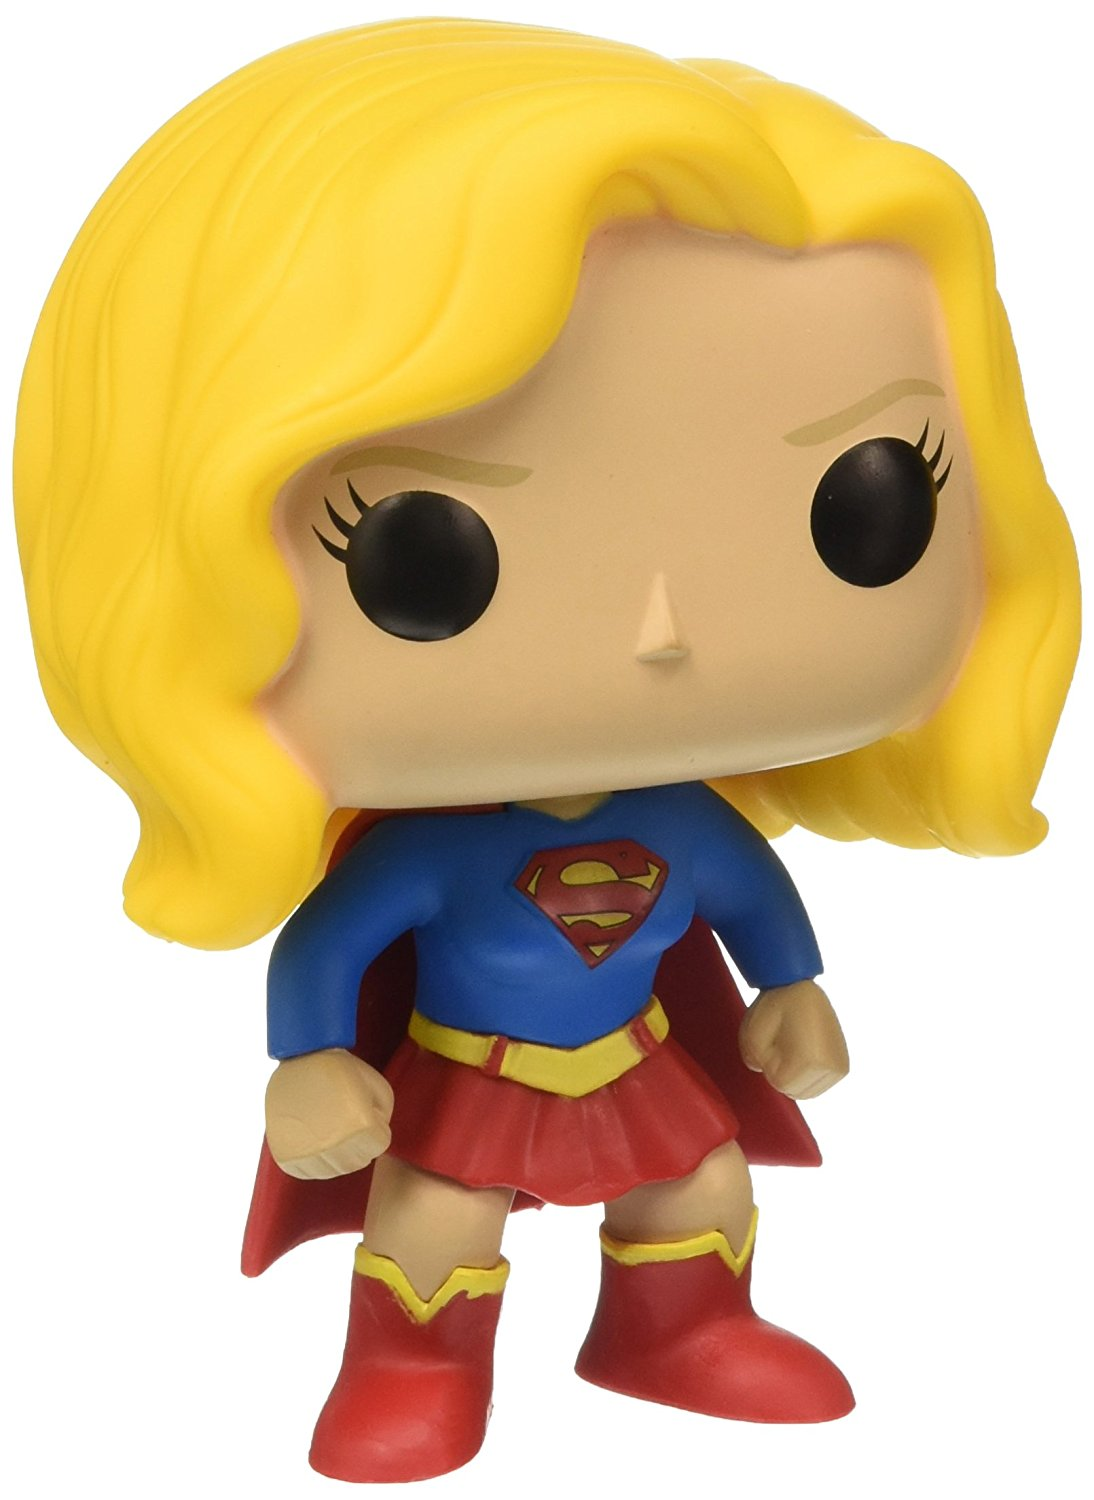 Funko pop Official TV: Supergirl Vinyl Action Figure Collectible Model Toy with Original Box